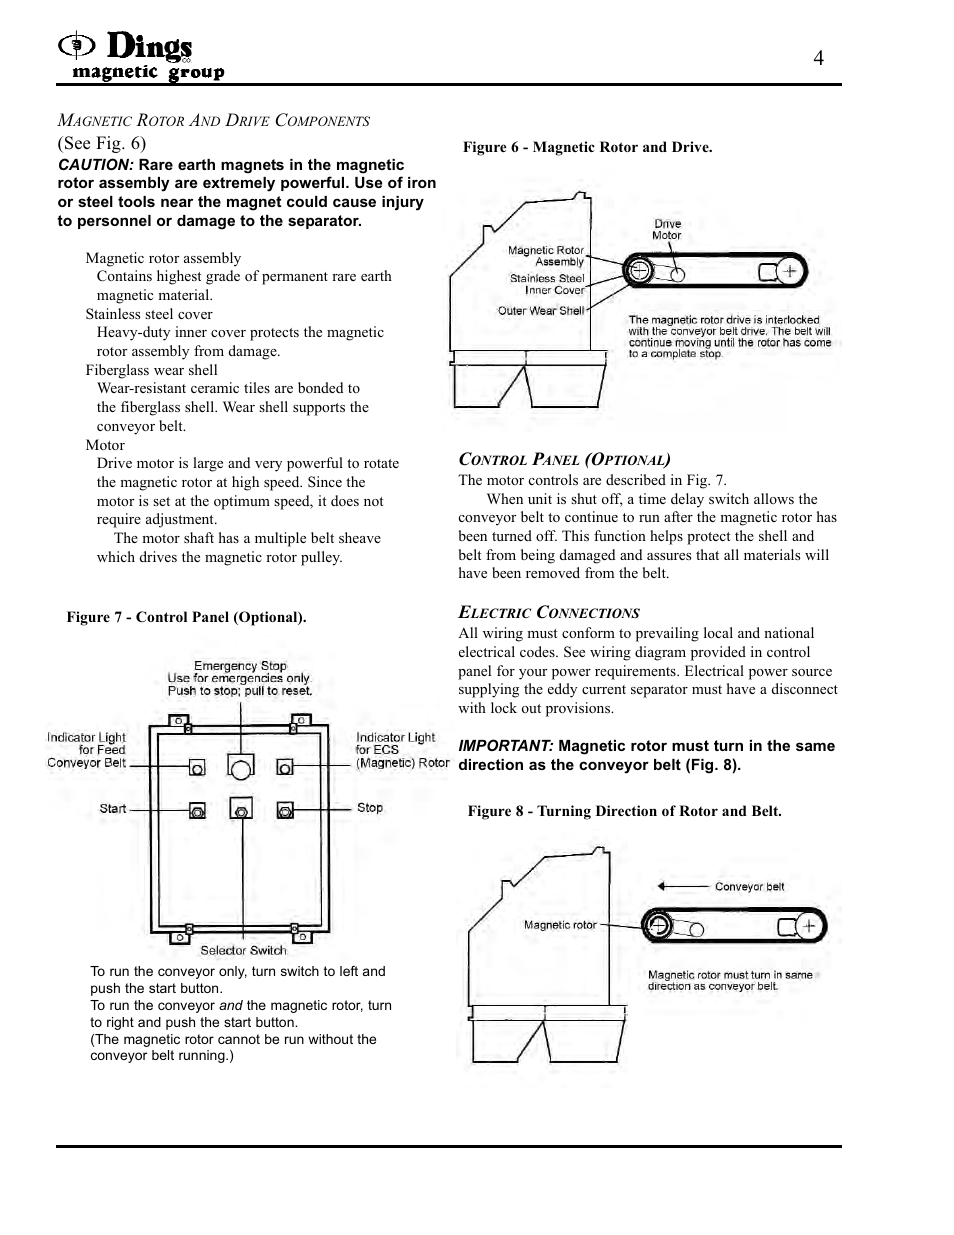 Dings Magnetic Group 2 Pulley Eddy Current Separator User Manual Time Delay Switch Wiring Diagram Page 4 8